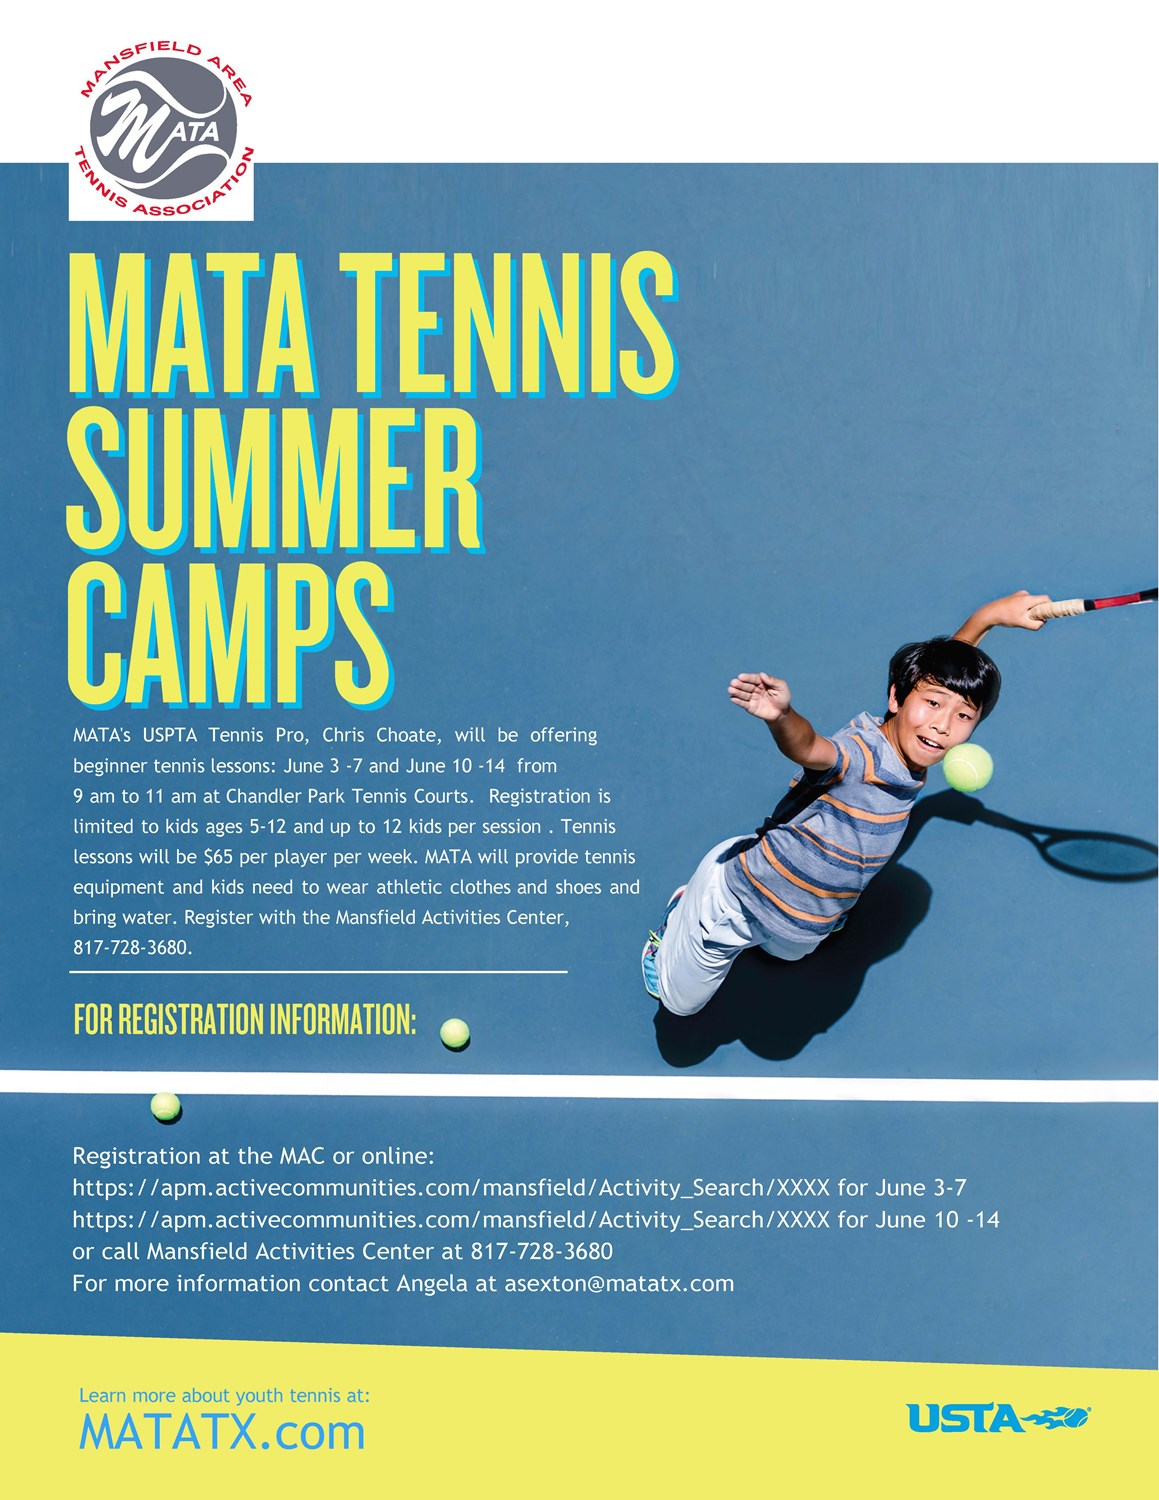 MATA_Summer_Camps_flyer_2019